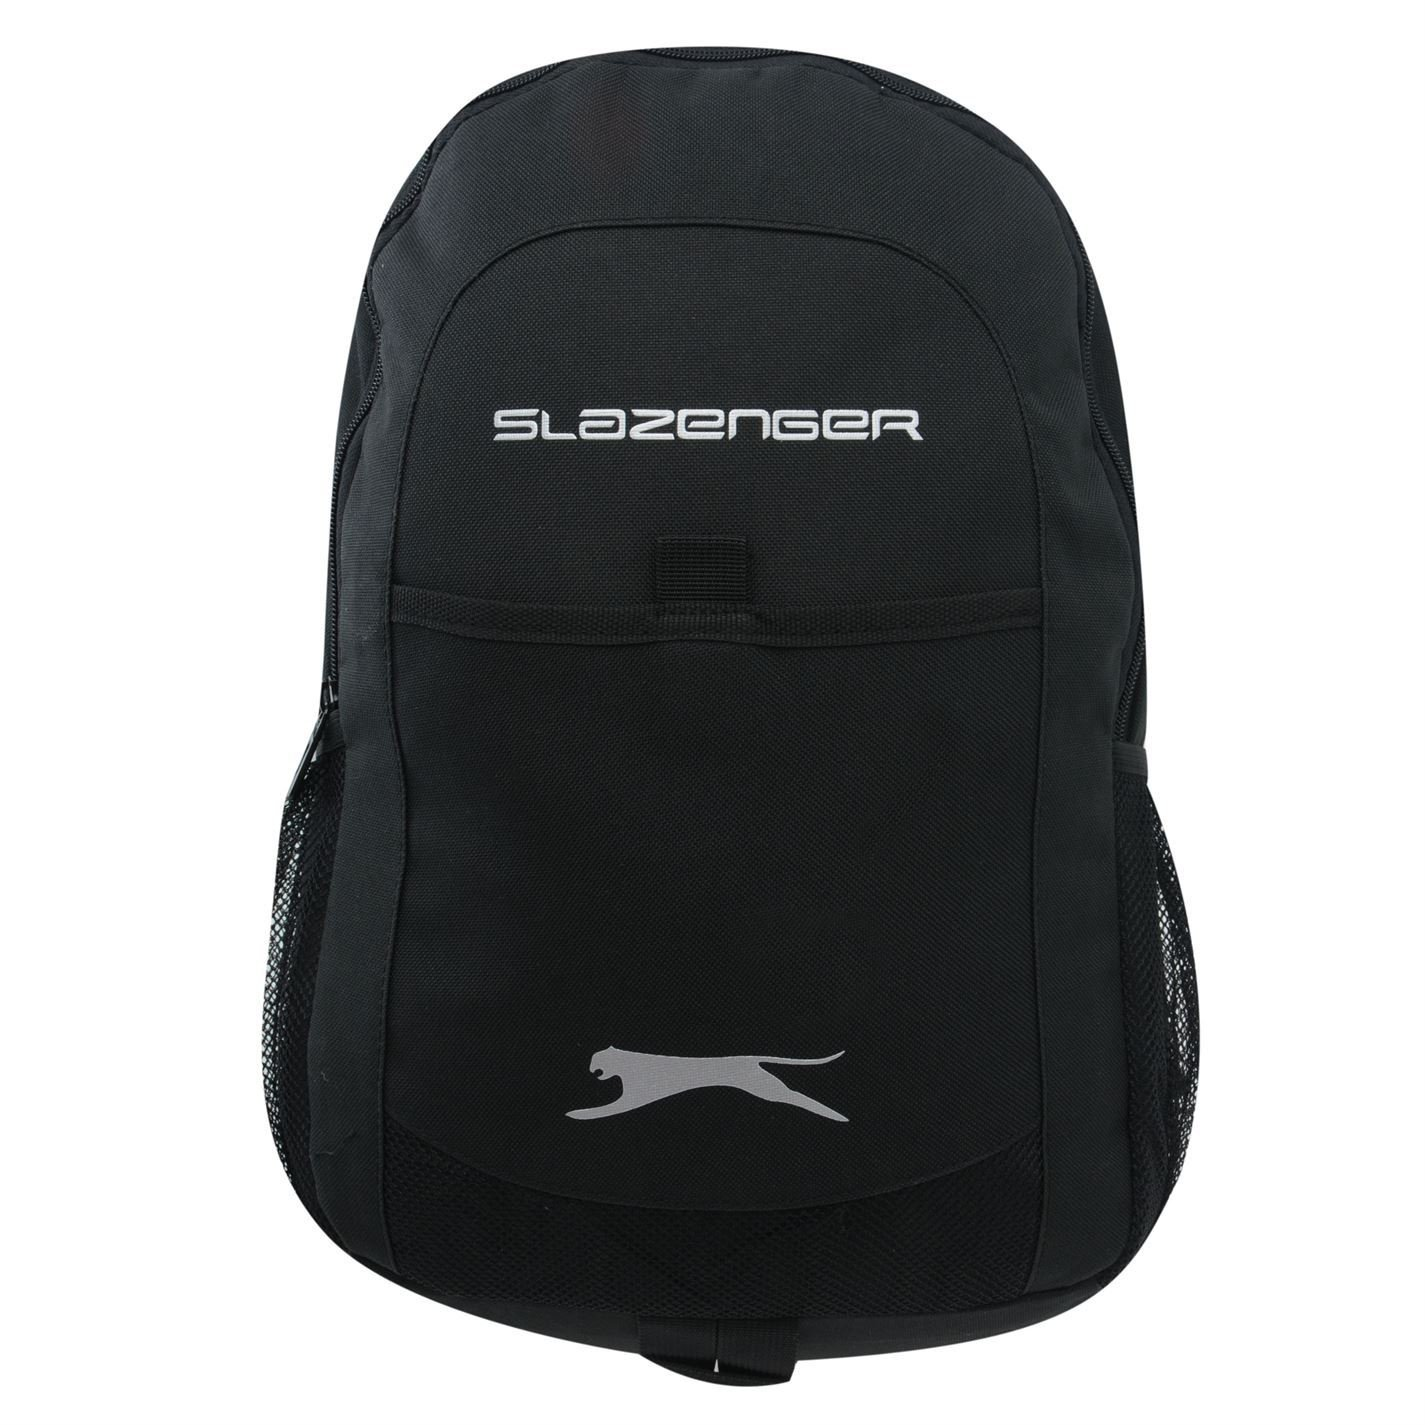 6ae139468c0 Slazenger Tech Backpack Rucksack Bag School Travel Accessory Brand New Black  One Size: Amazon.co.uk: Luggage